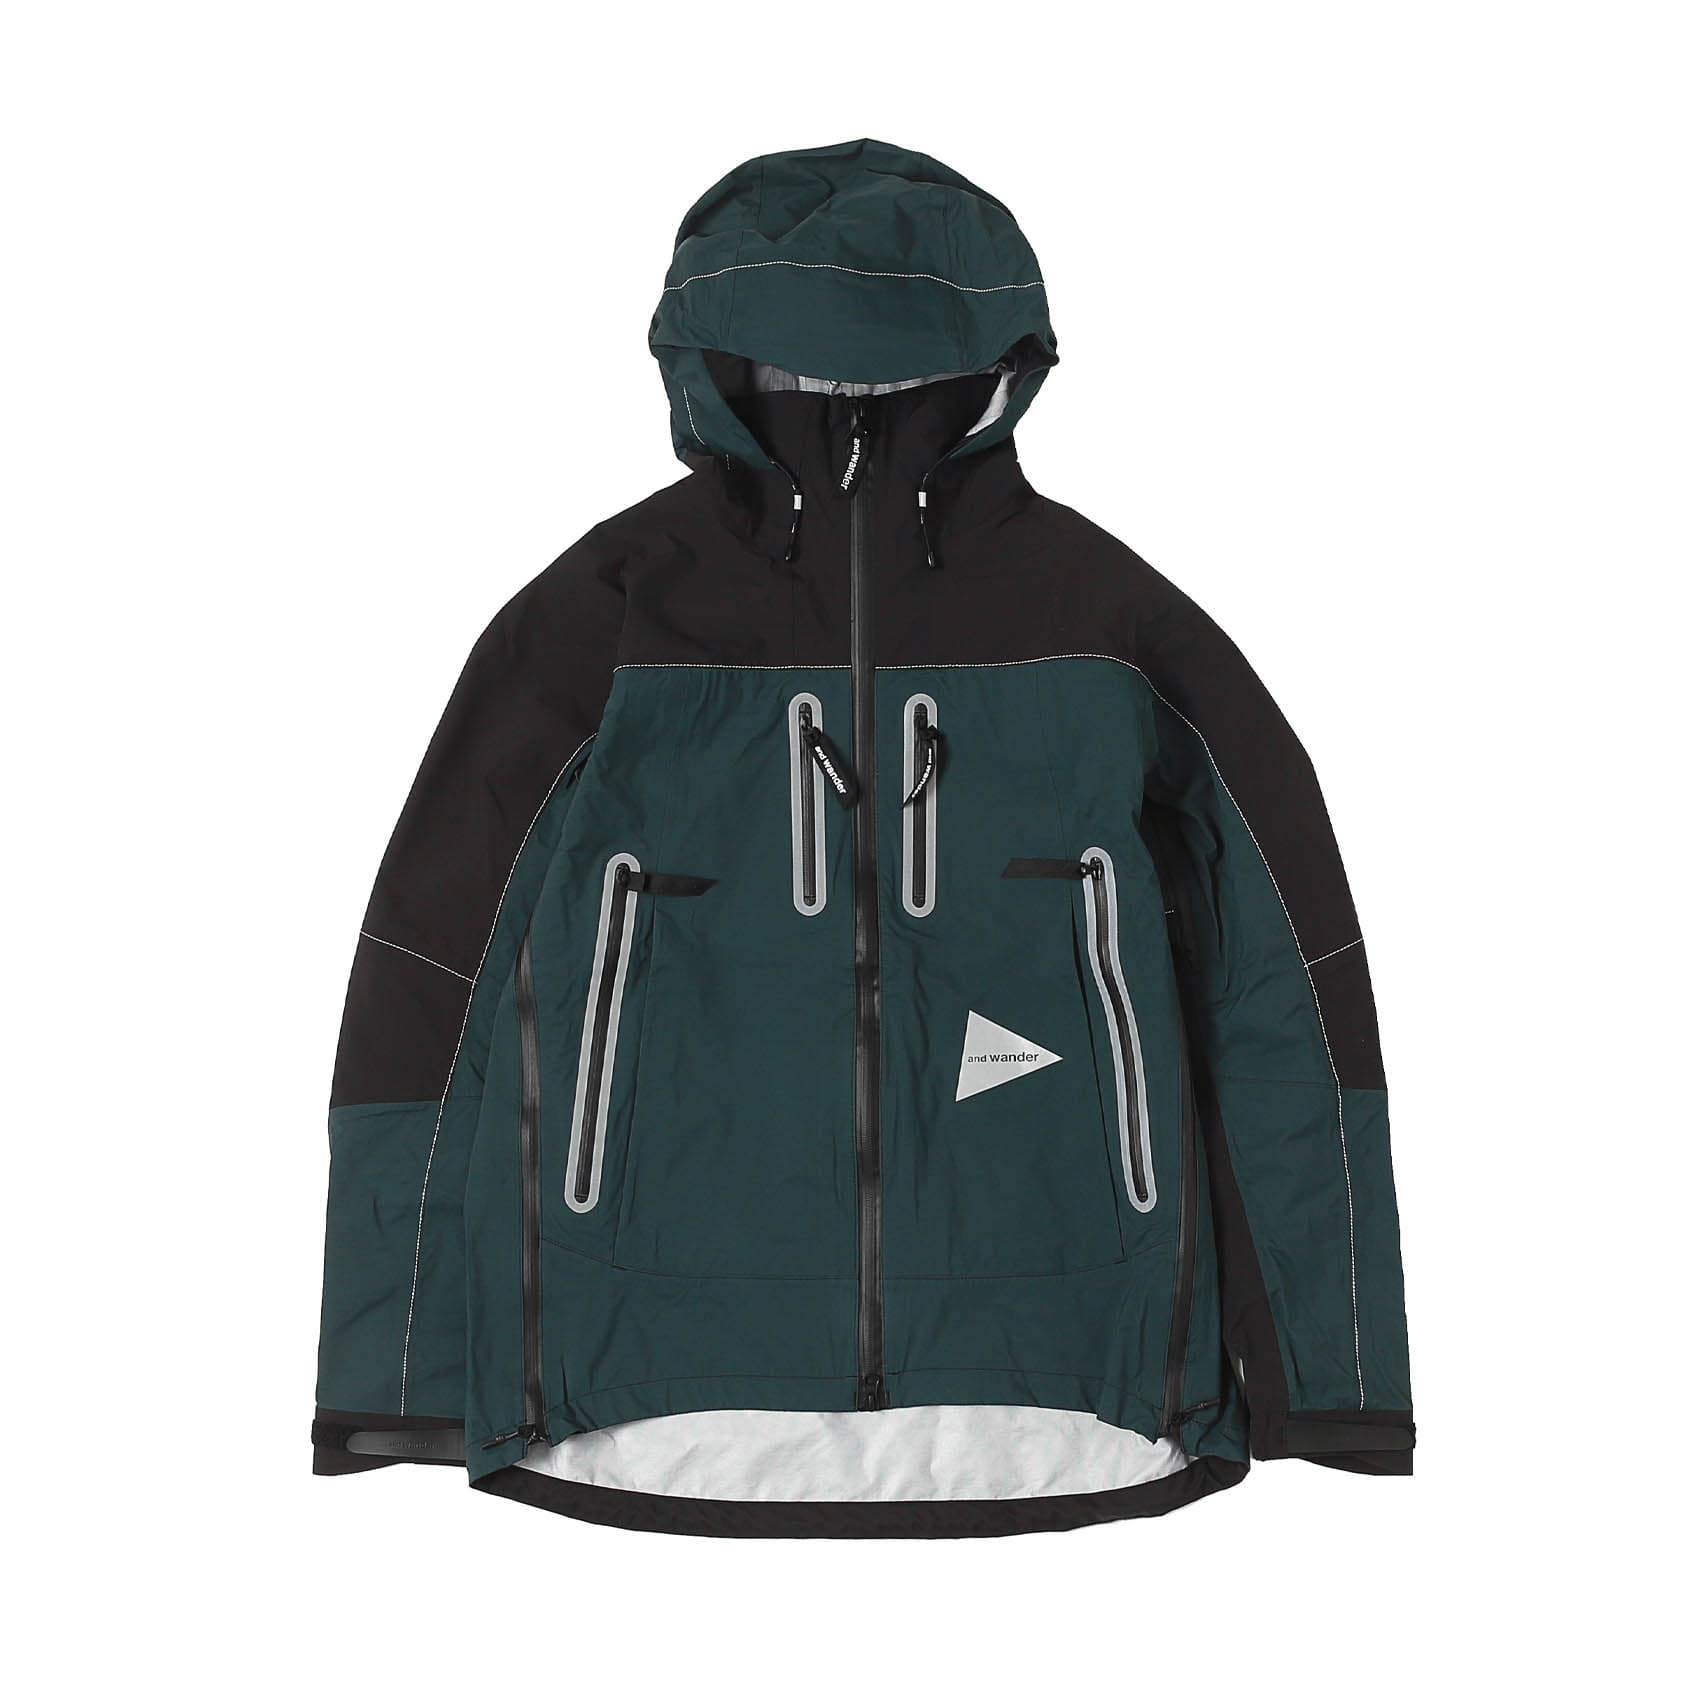 EVENT RAIN JACKET - BLACK/GREEN